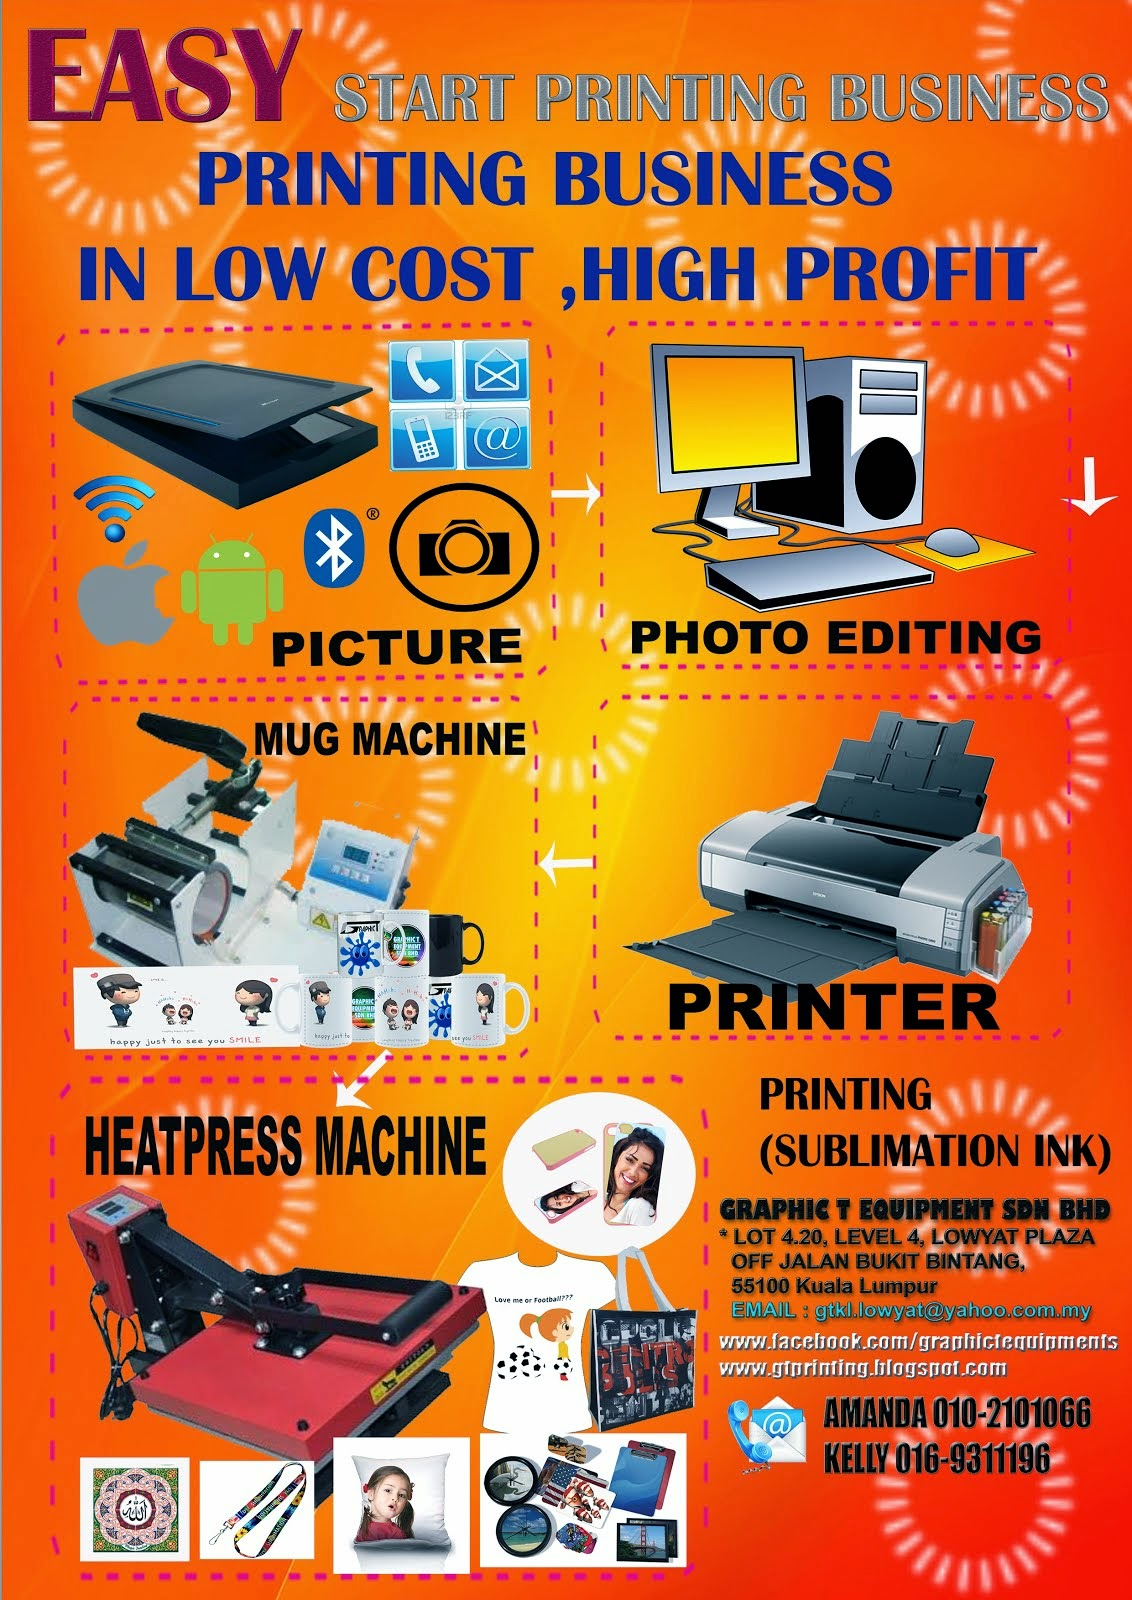 Color printing lowyat - Easy Start Printing Business